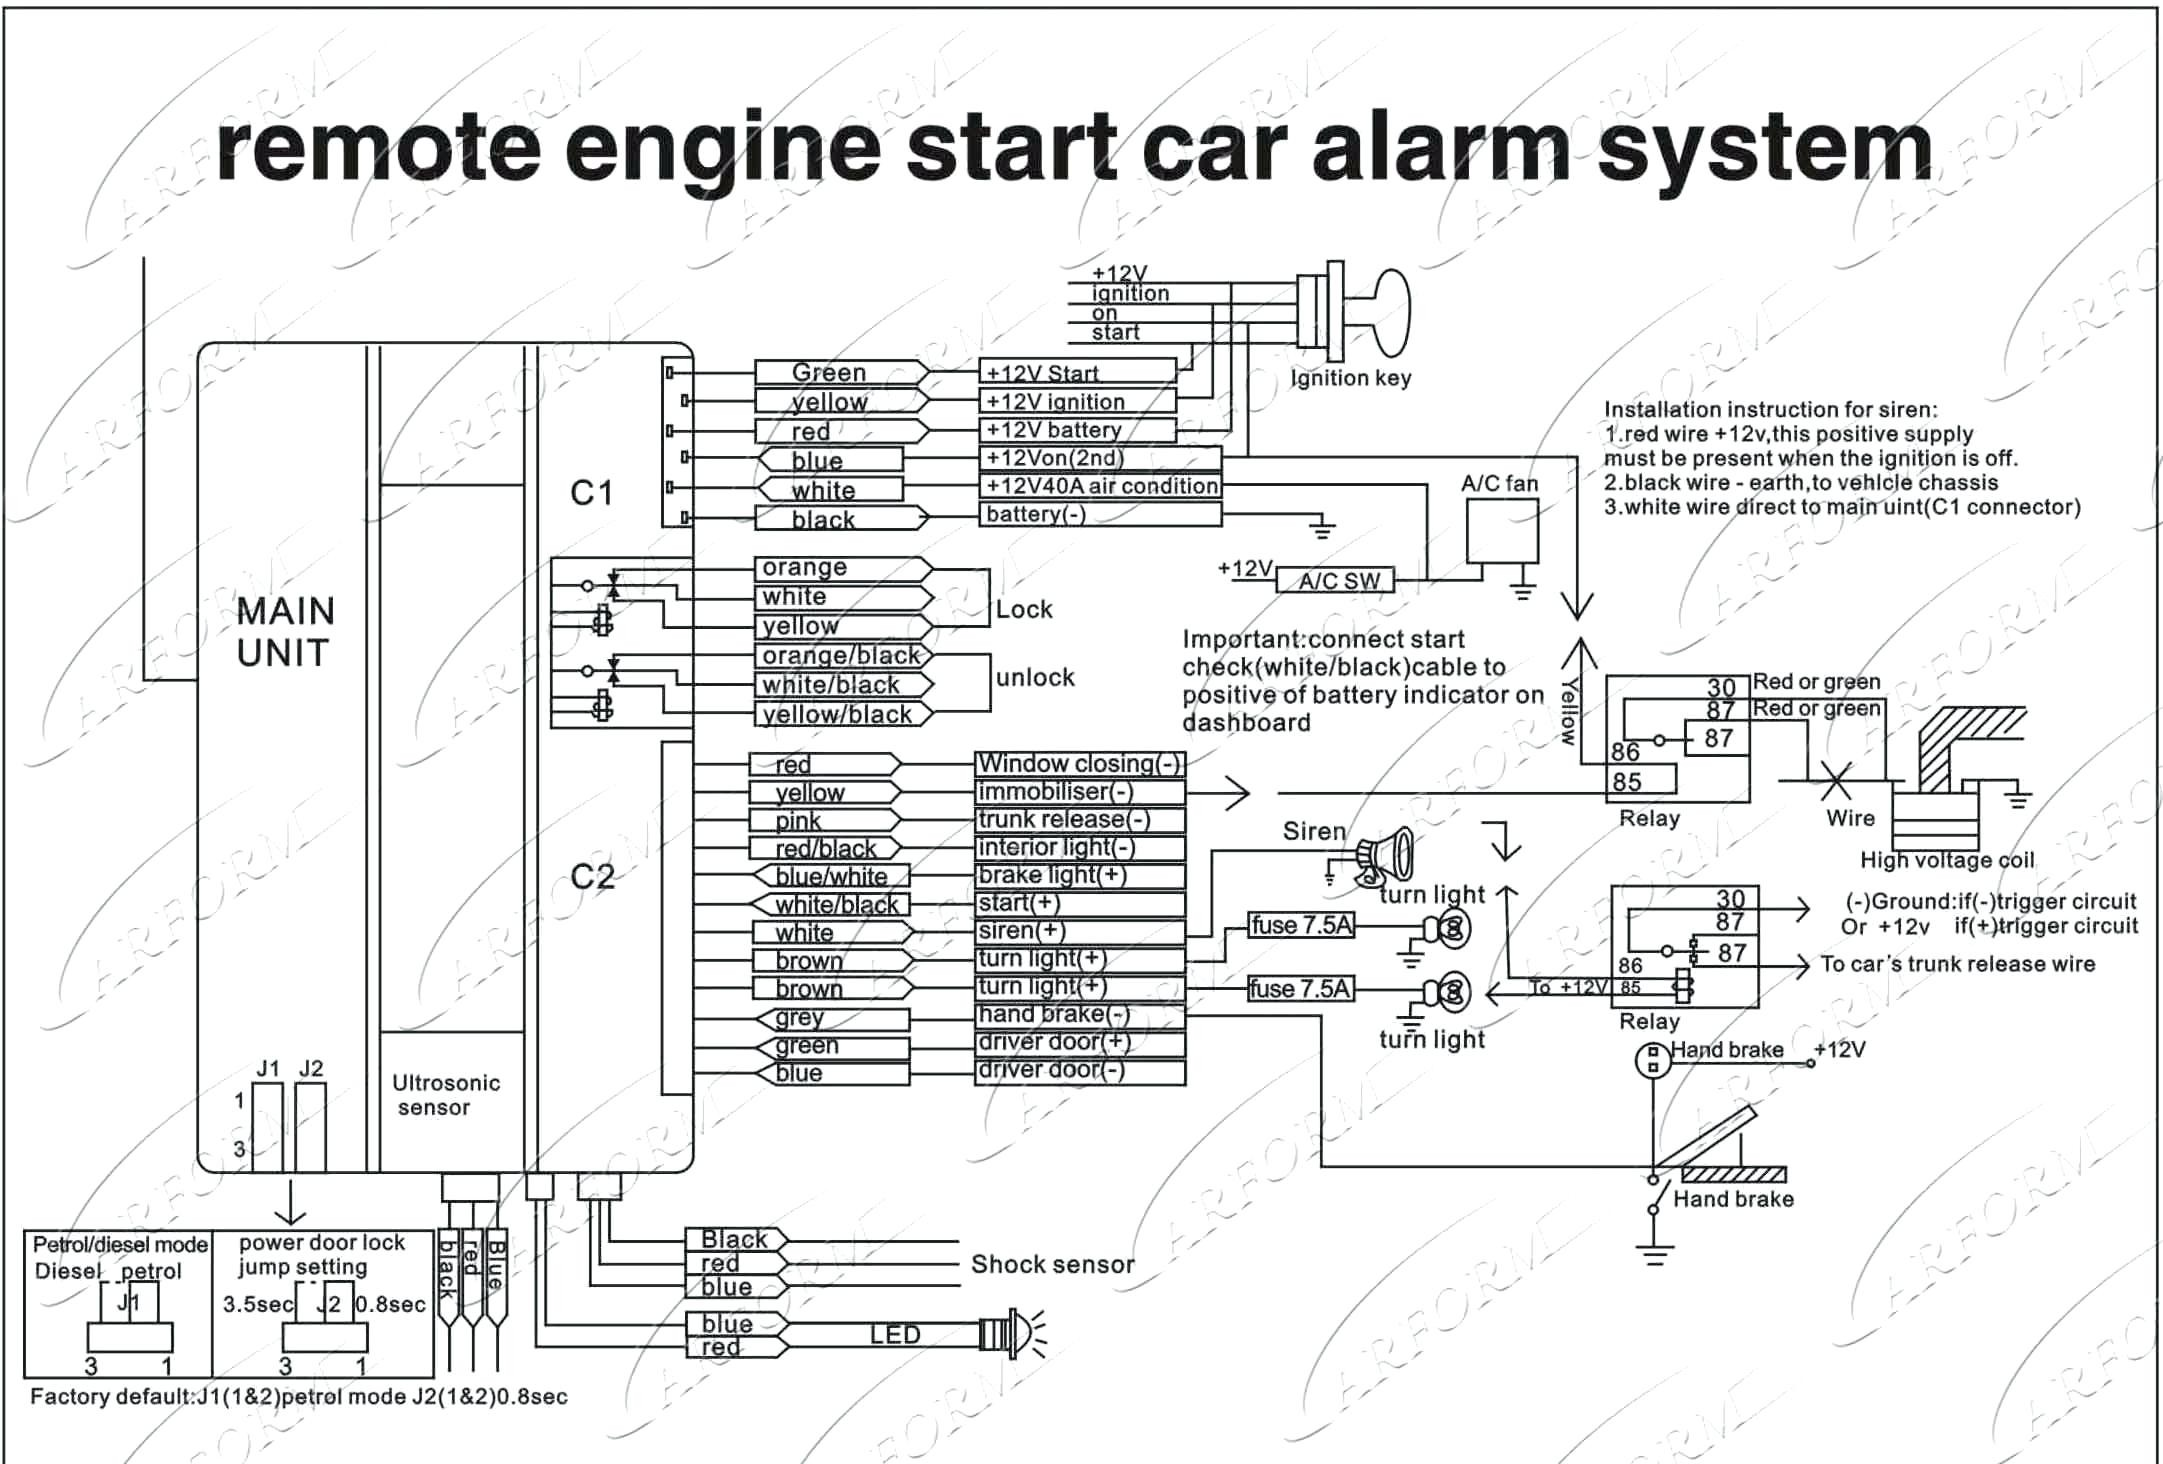 Car alarm system wiring diagram dsc alarm wiring diagram wiring car alarm system wiring diagram car security system wiring diagram volovetsfo of car alarm system swarovskicordoba Gallery